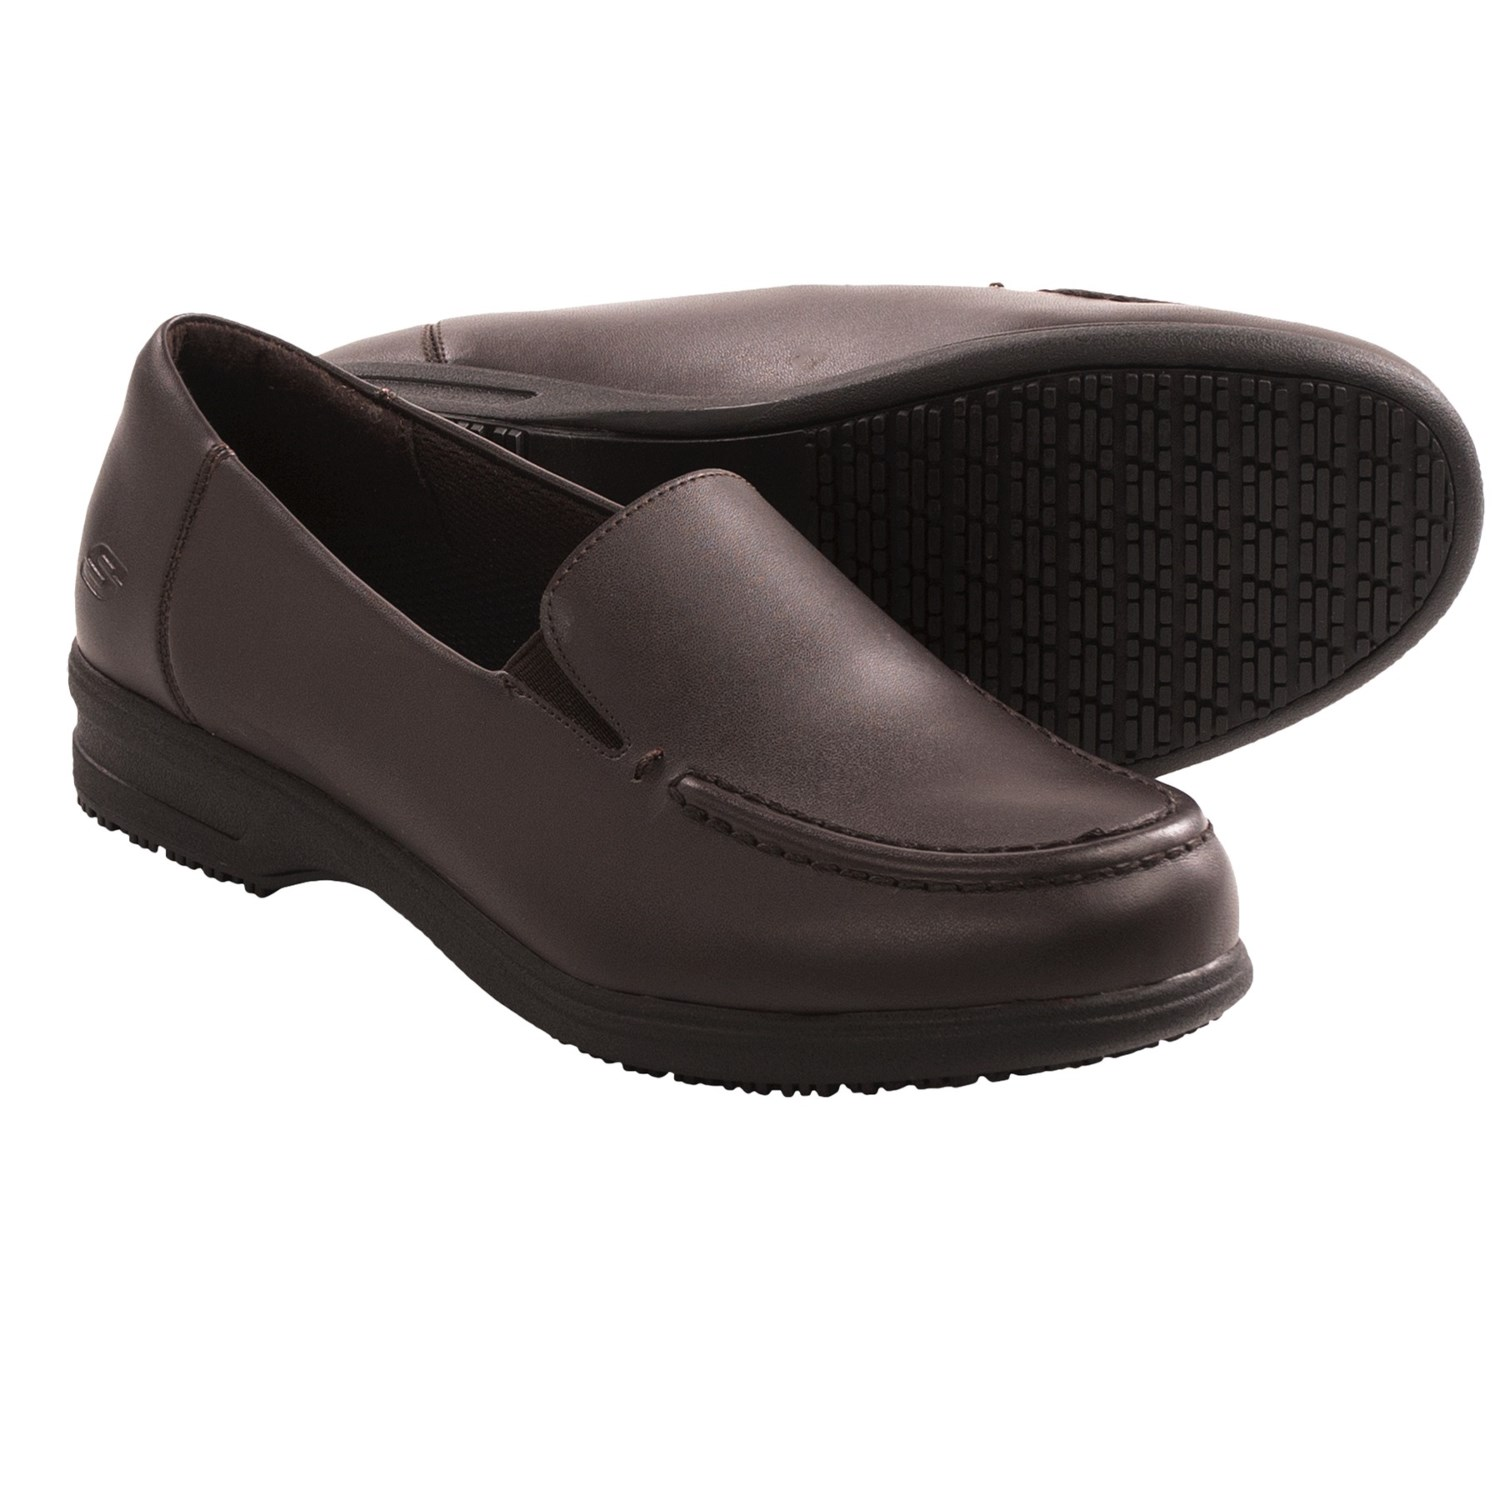 These Women shoes for work extra arch support and special insoles to help employees deal with long hours of the feet. Is it just standing in one place or